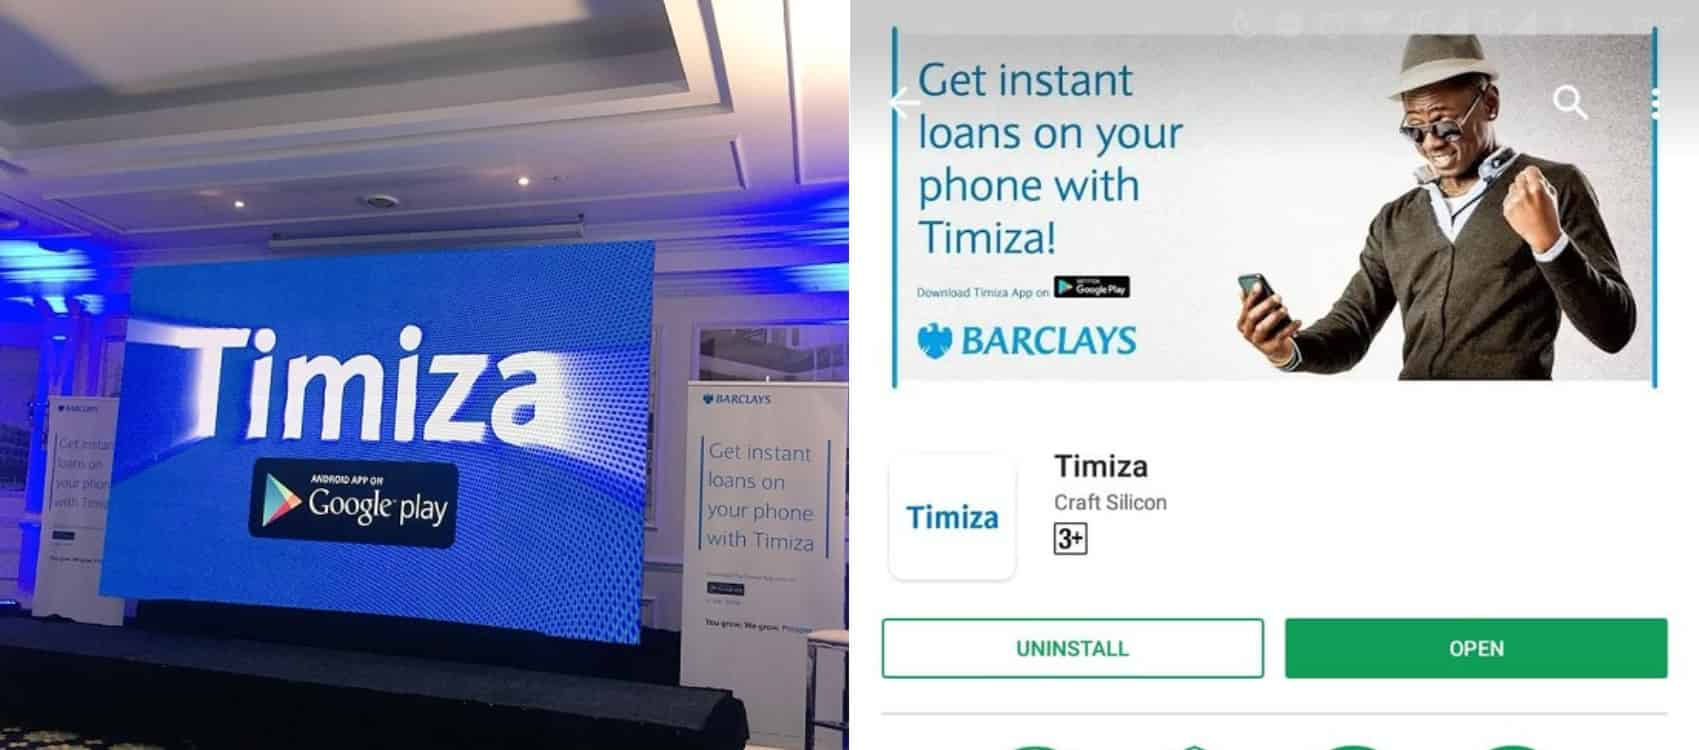 Timiza loan Image